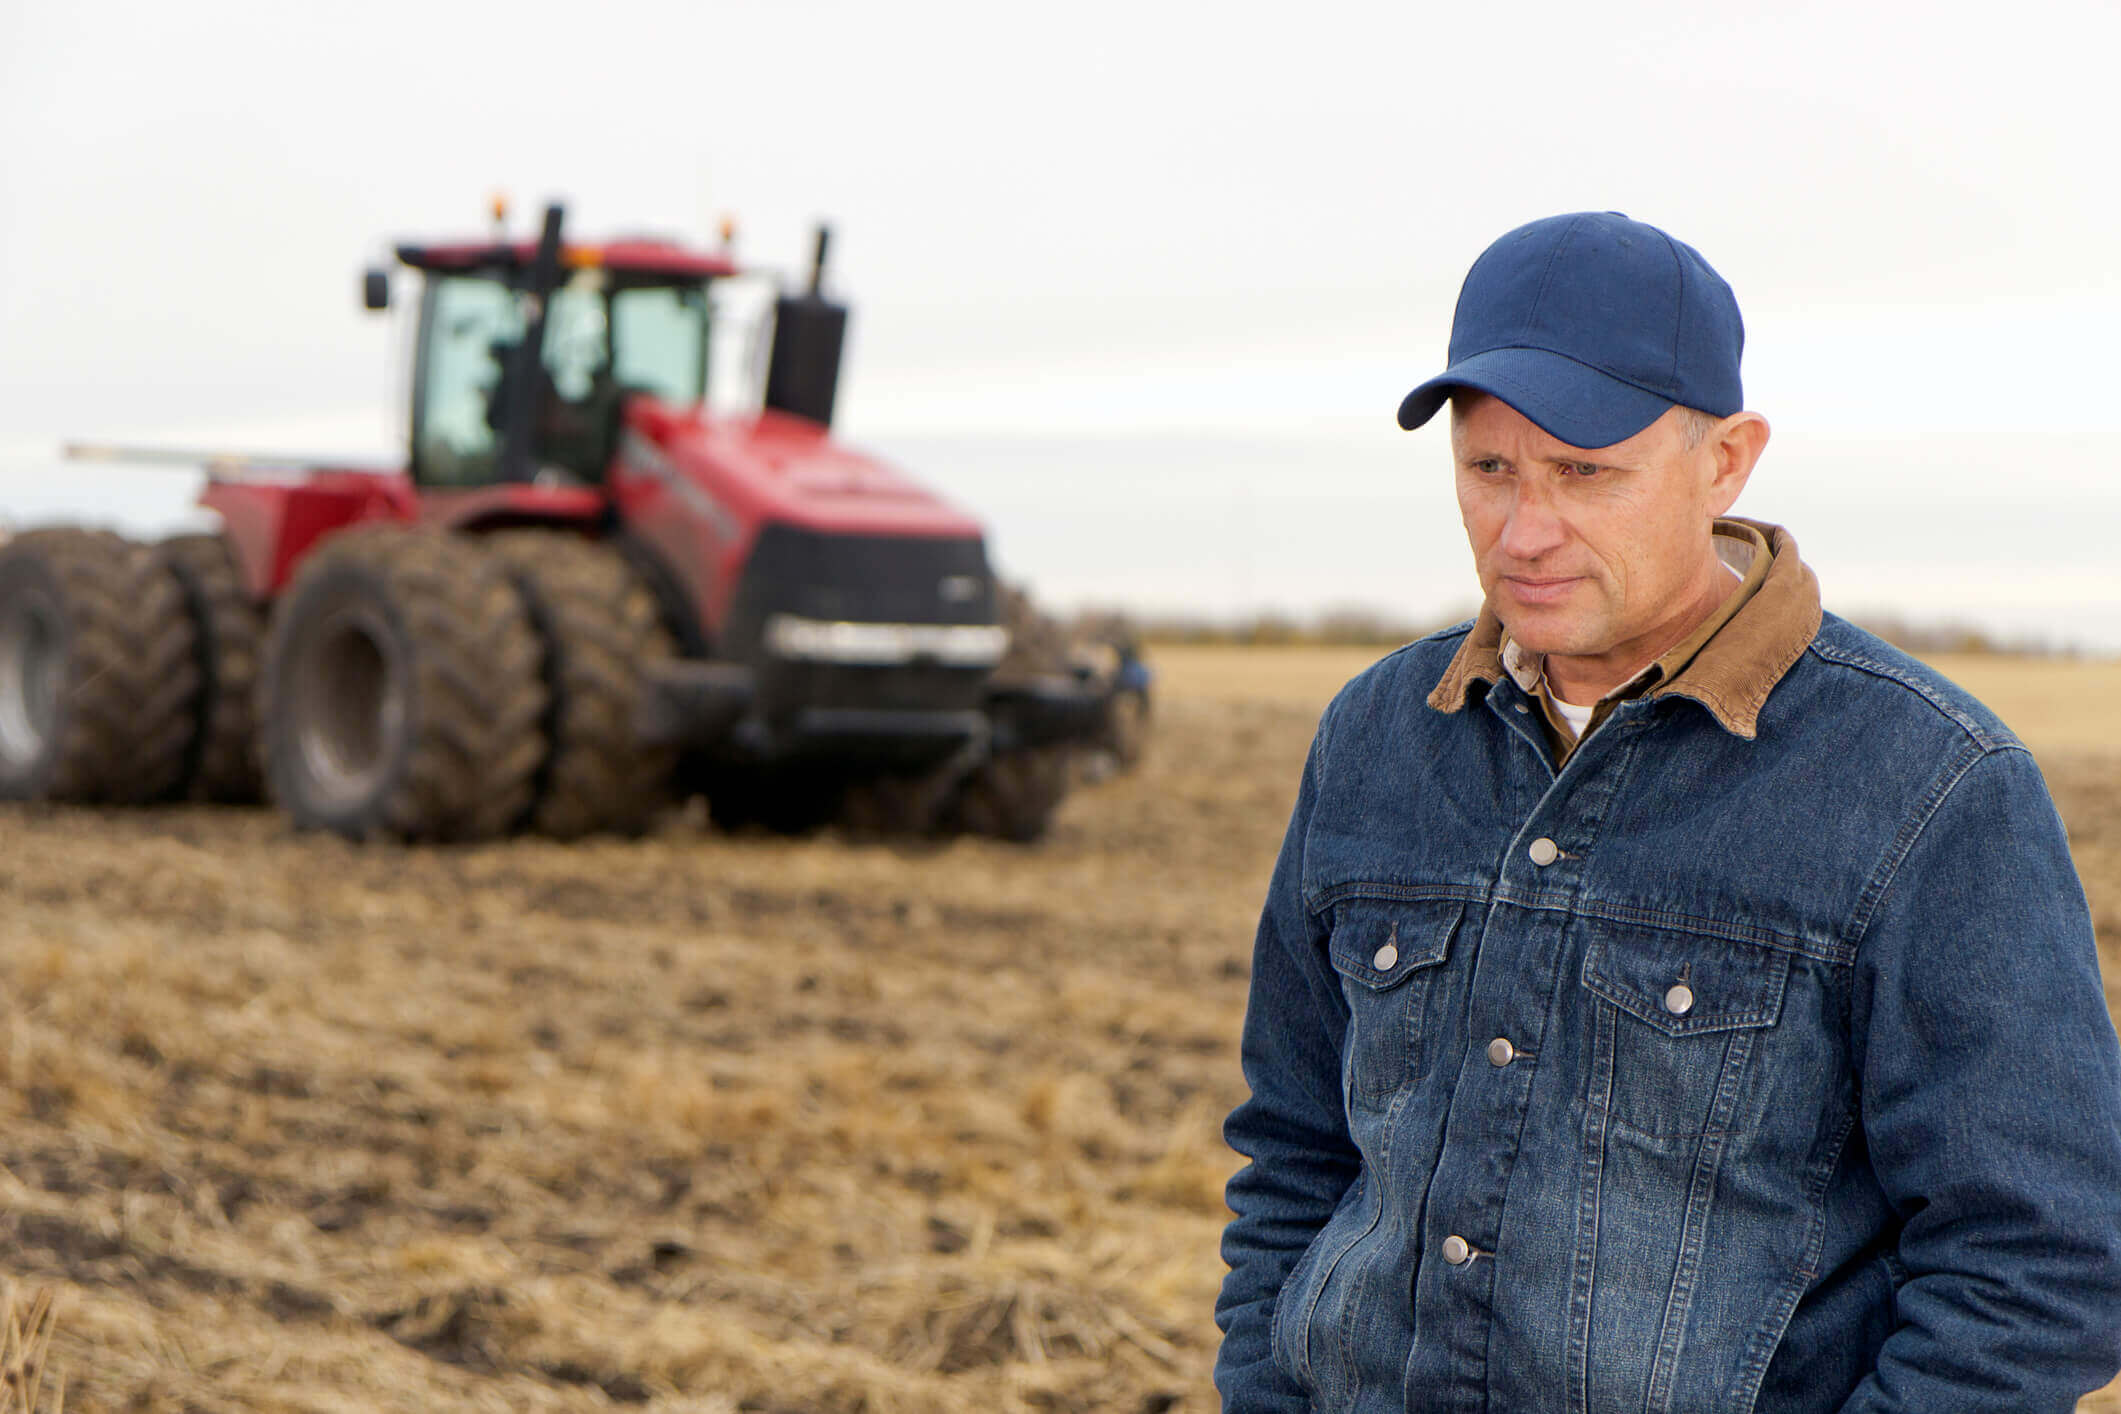 Local Challenges Facing the Agriculture Community